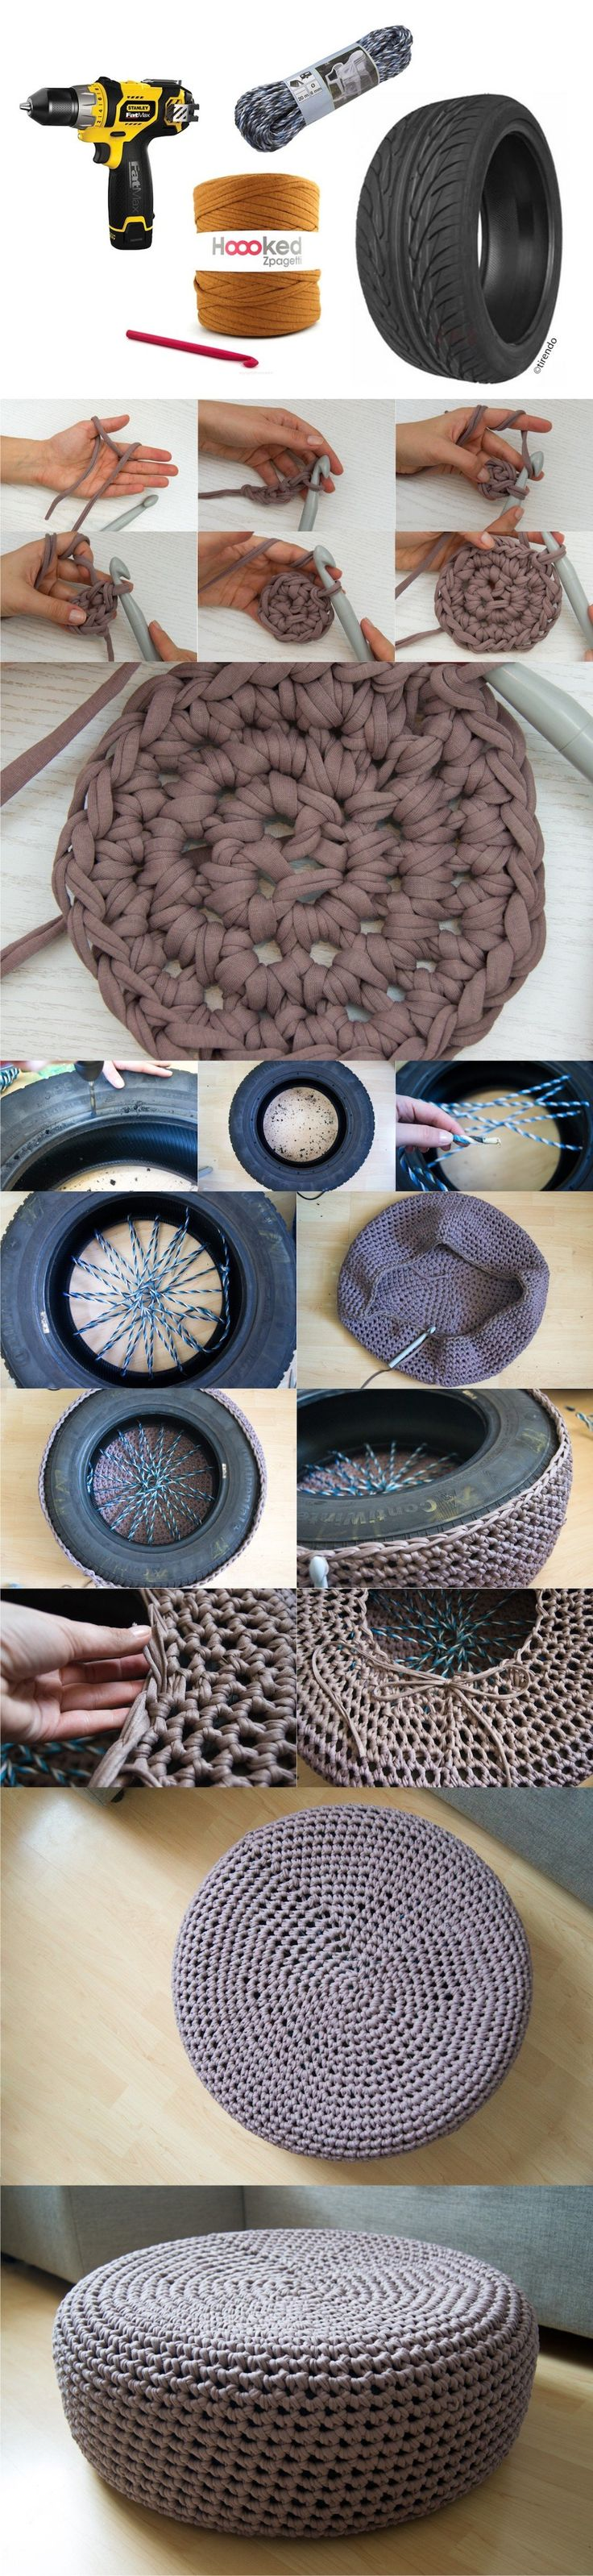 Buena idea para reciclar neumático - yellowgirl.at - DIY Crochet Tire Puff